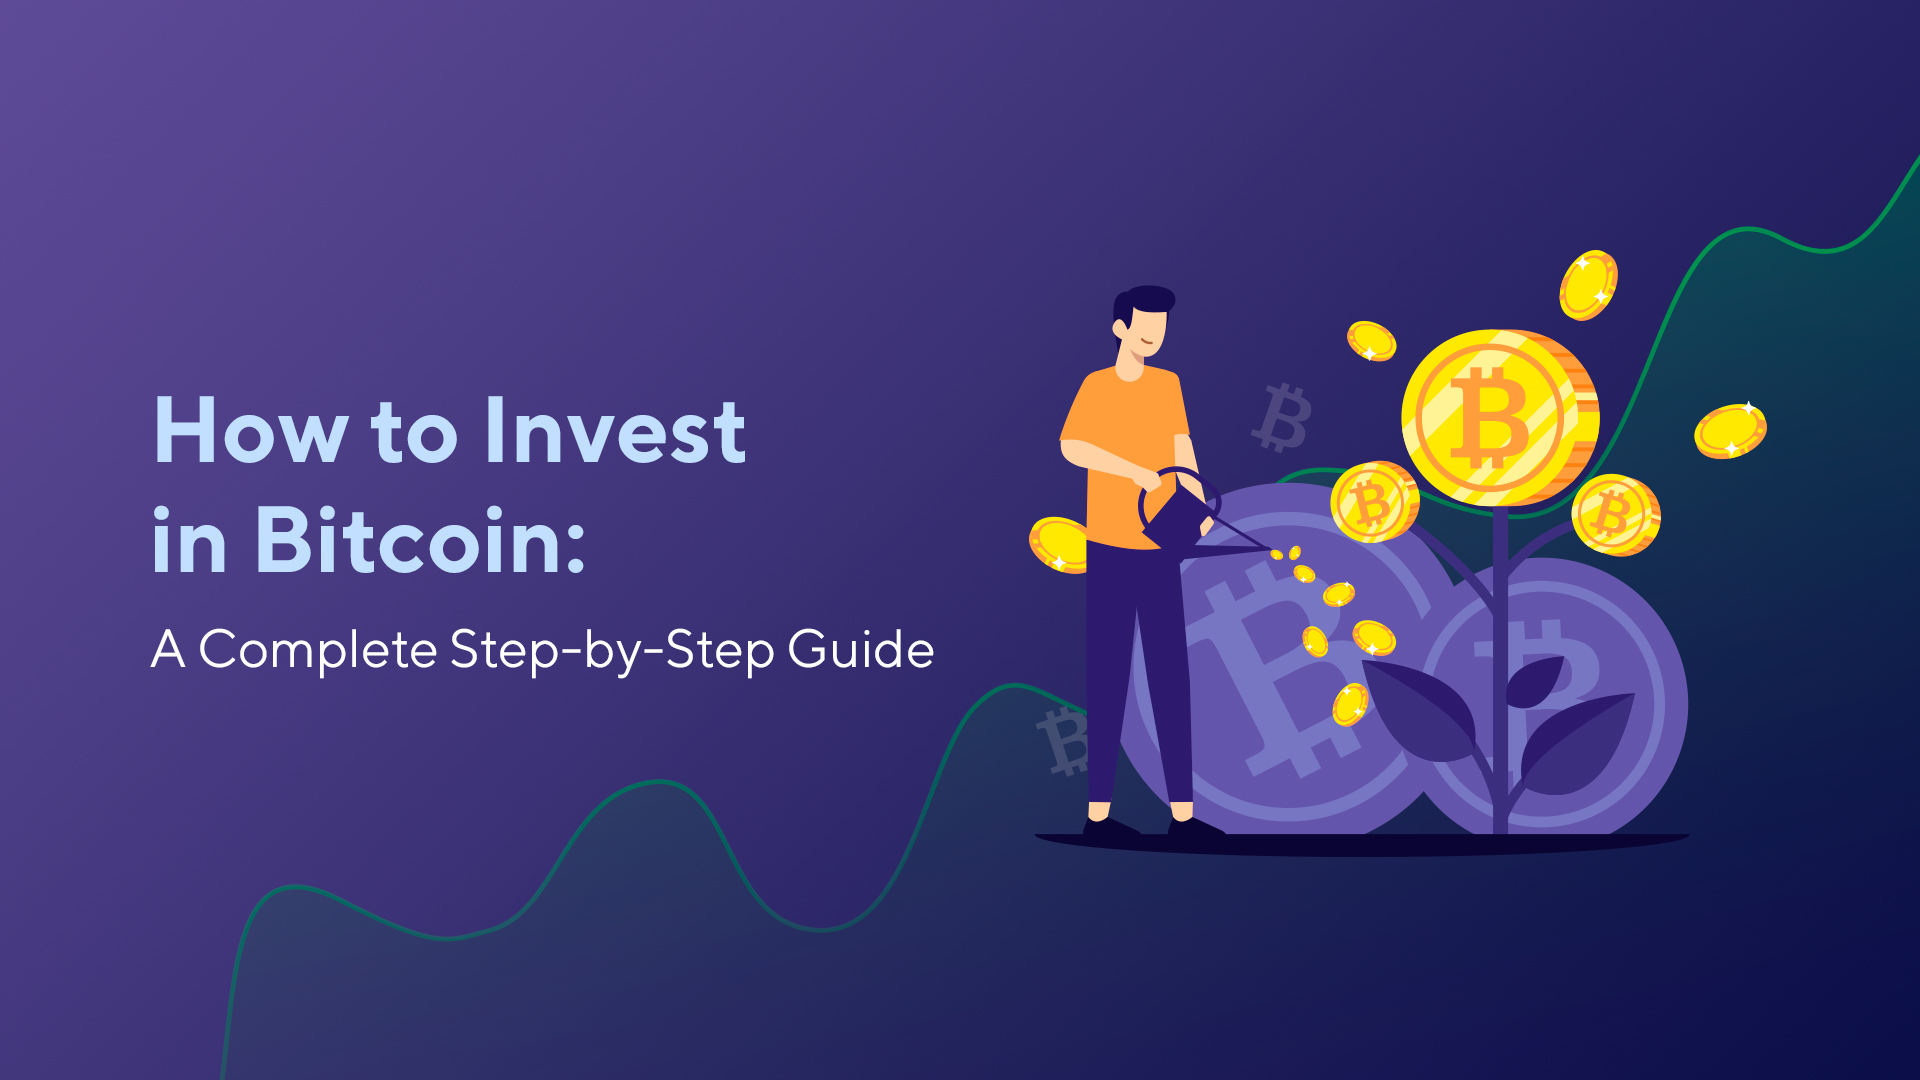 How to Invest in Bitcoin: A Complete Step-by-Step Guide